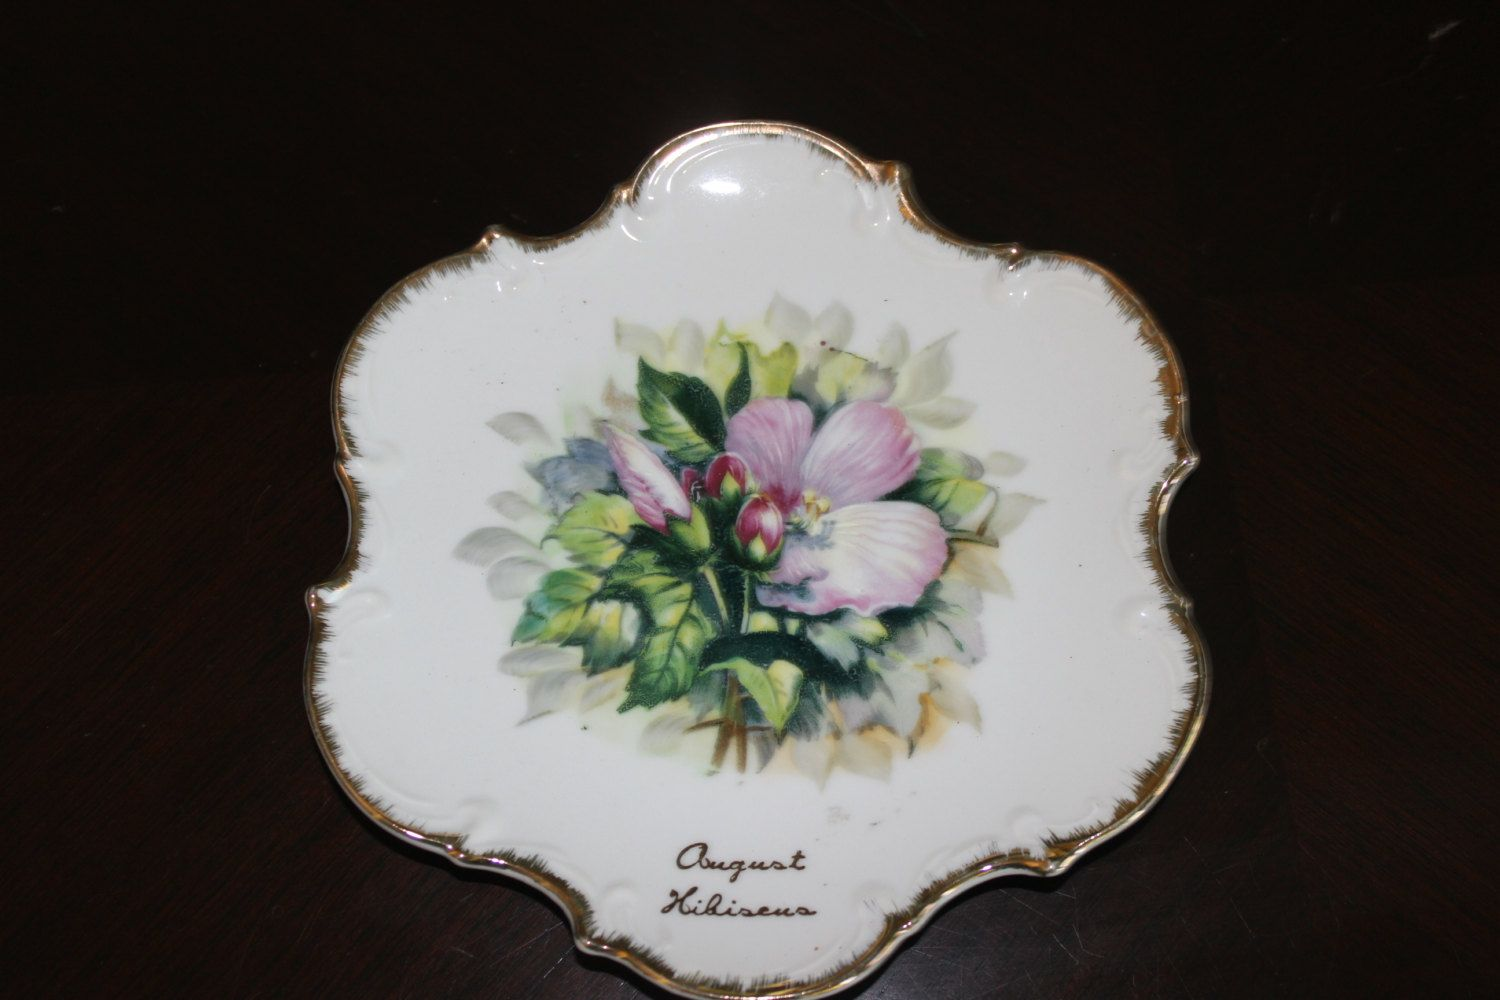 August Birth Month Plate Poppy Flowers Gold Scalloped Trim Norcrest